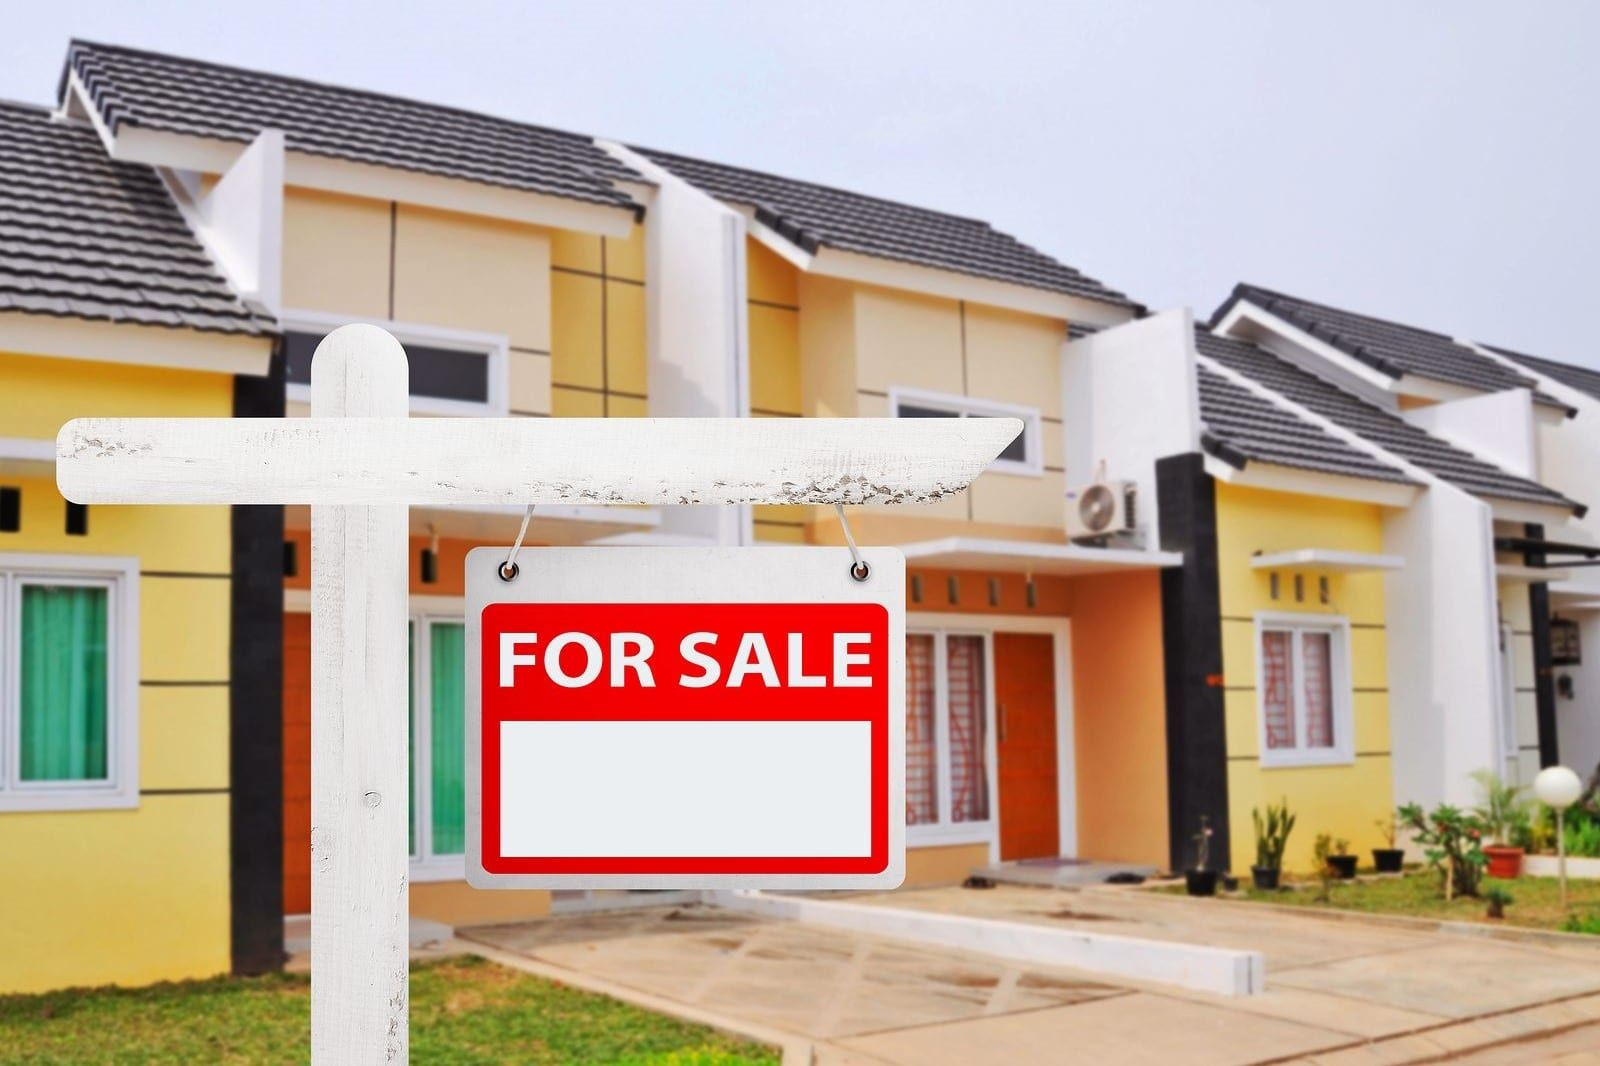 How to Find Investment Properties for Sale Near Me ...